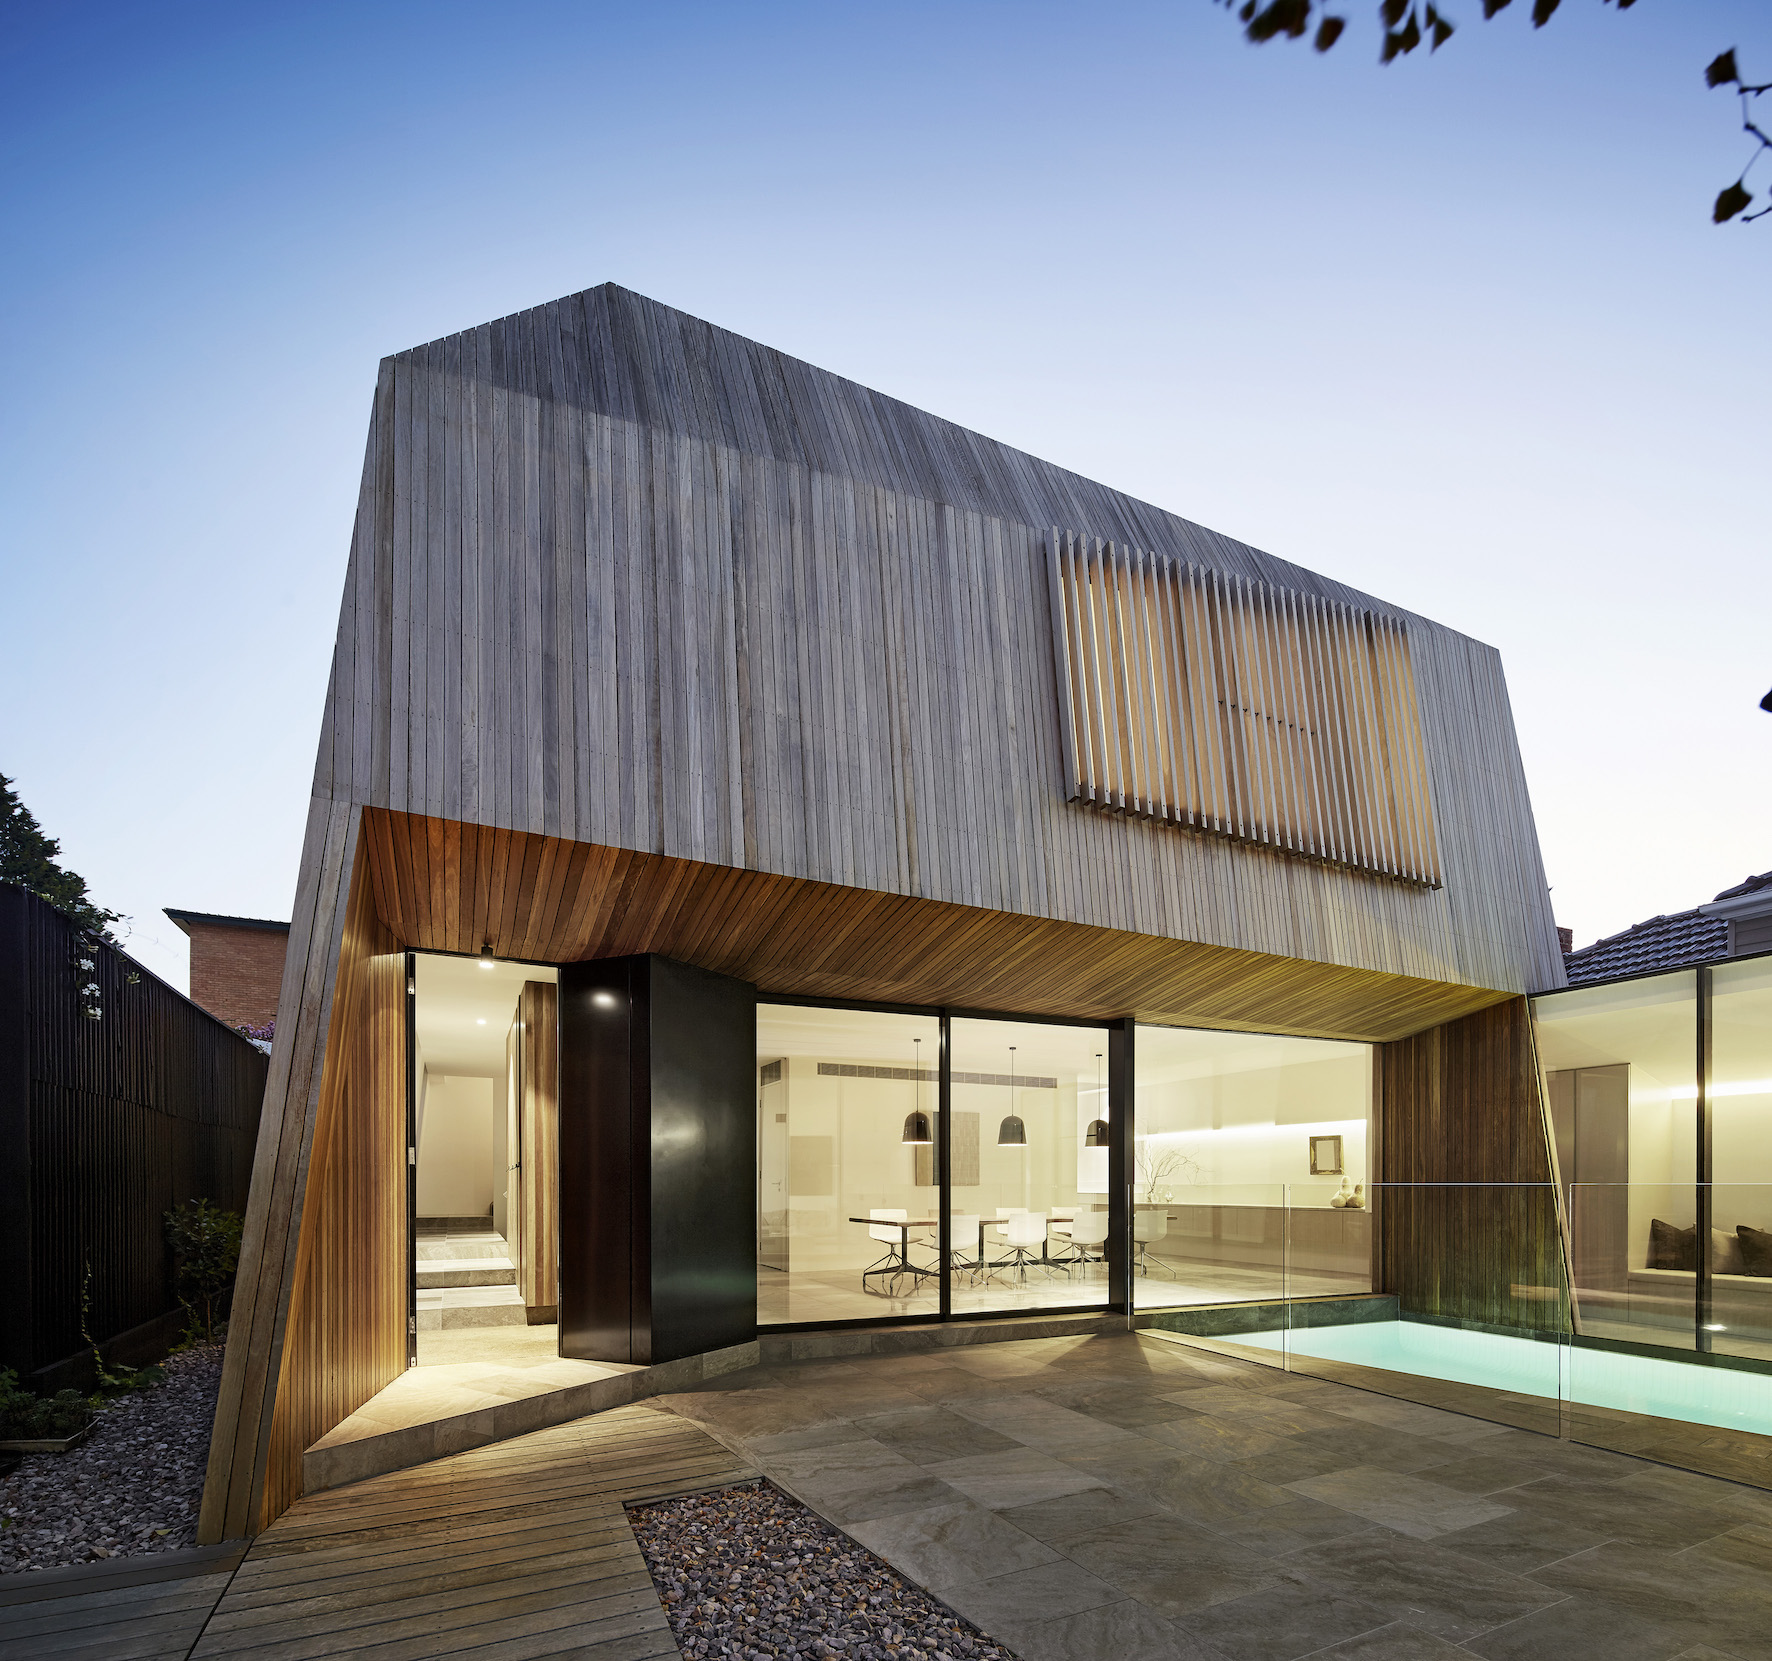 2015039491_0_CoyYiontisArchitects_House3_PeterClarke